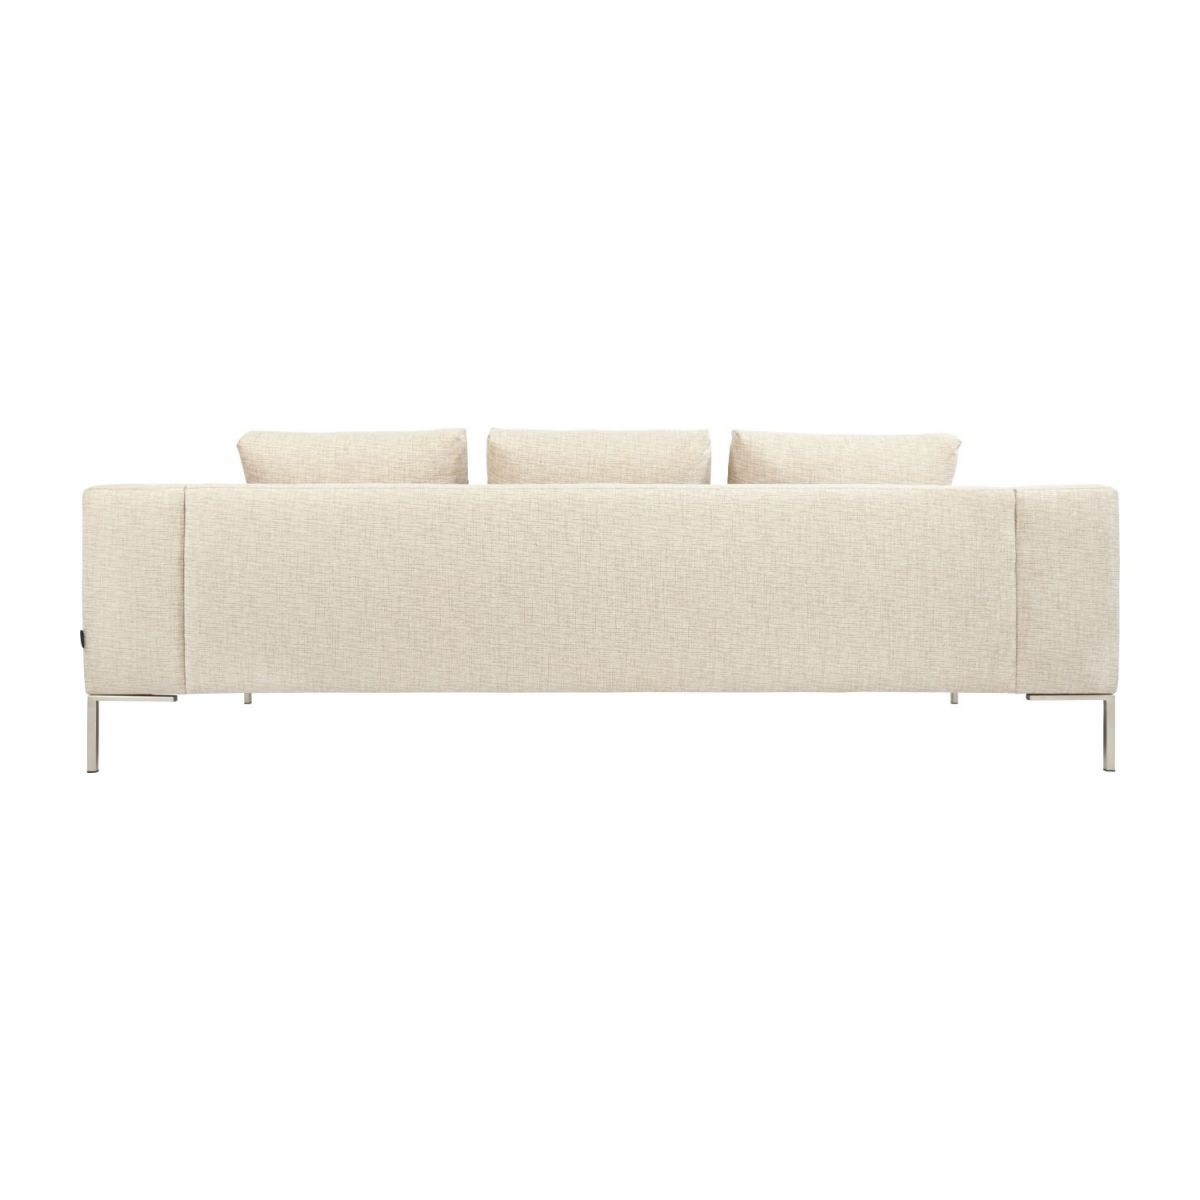 3 seater sofa in Ancio fabric, nature n°4